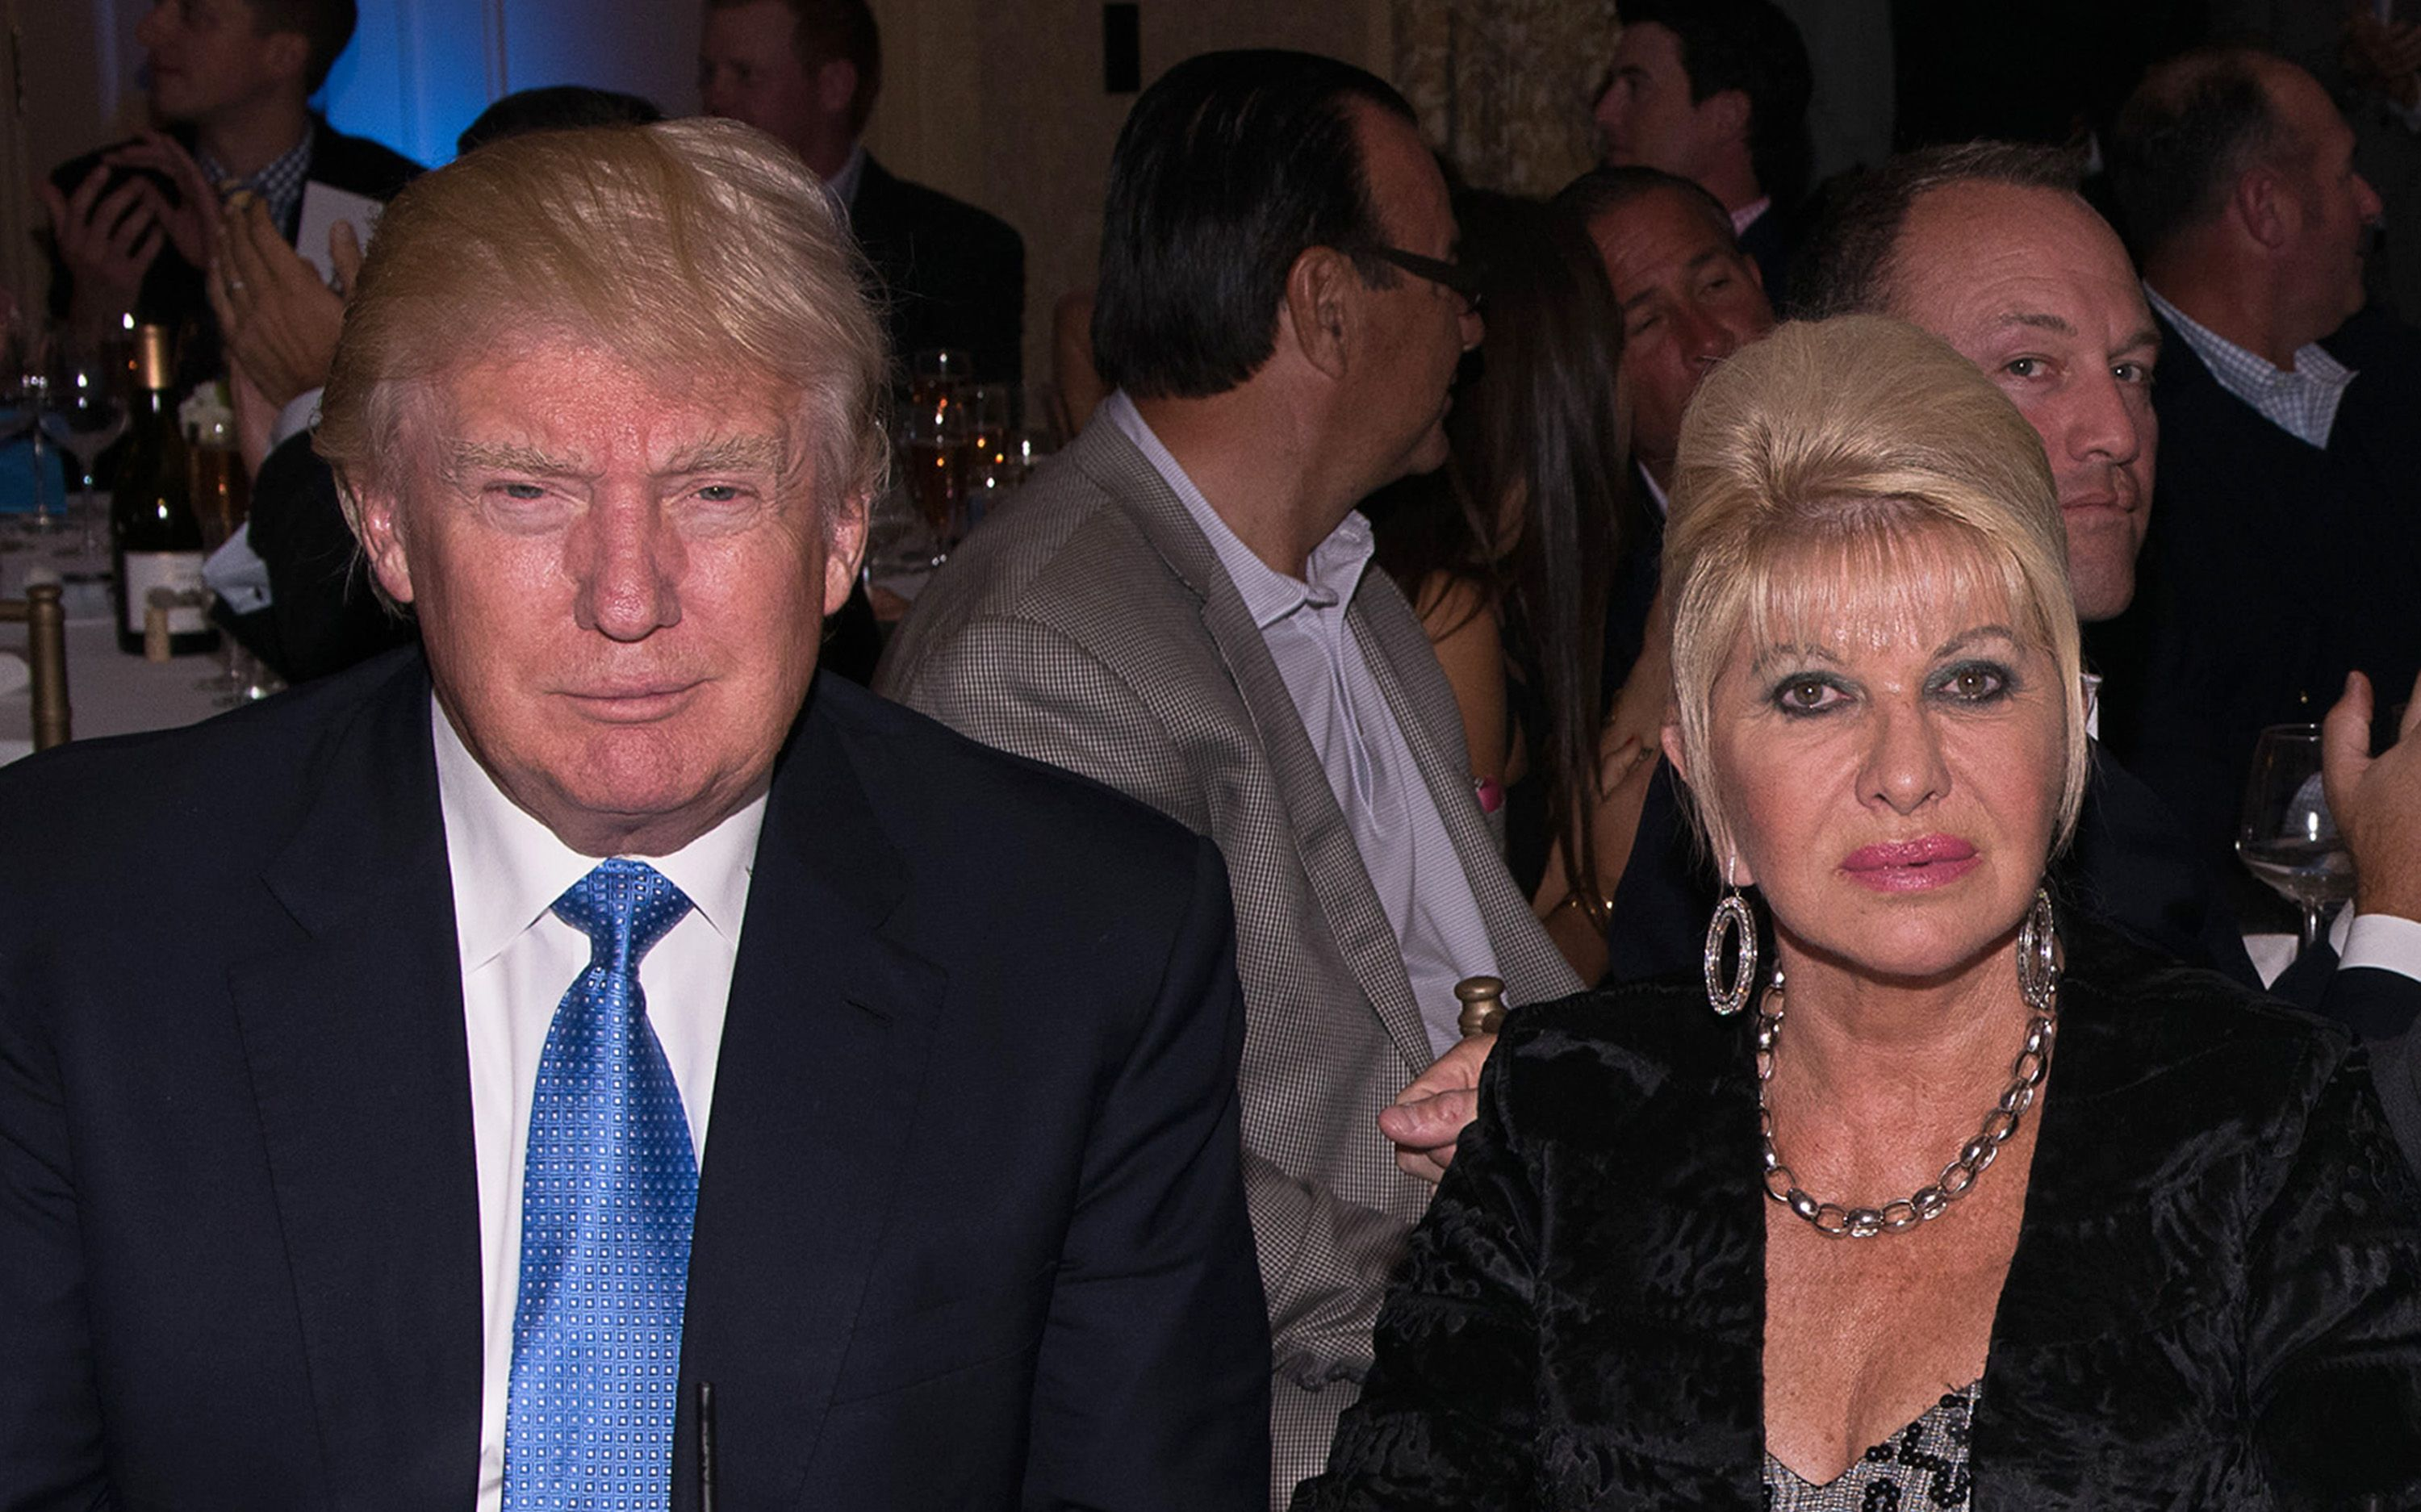 Donald Trump and Ivana Trump attend The Eric Trump 8th Annual Golf Tournament at Trump National Golf Club Westchester on September 15, 2014 in Briarcliff Manor, New York. | Source: Getty Images